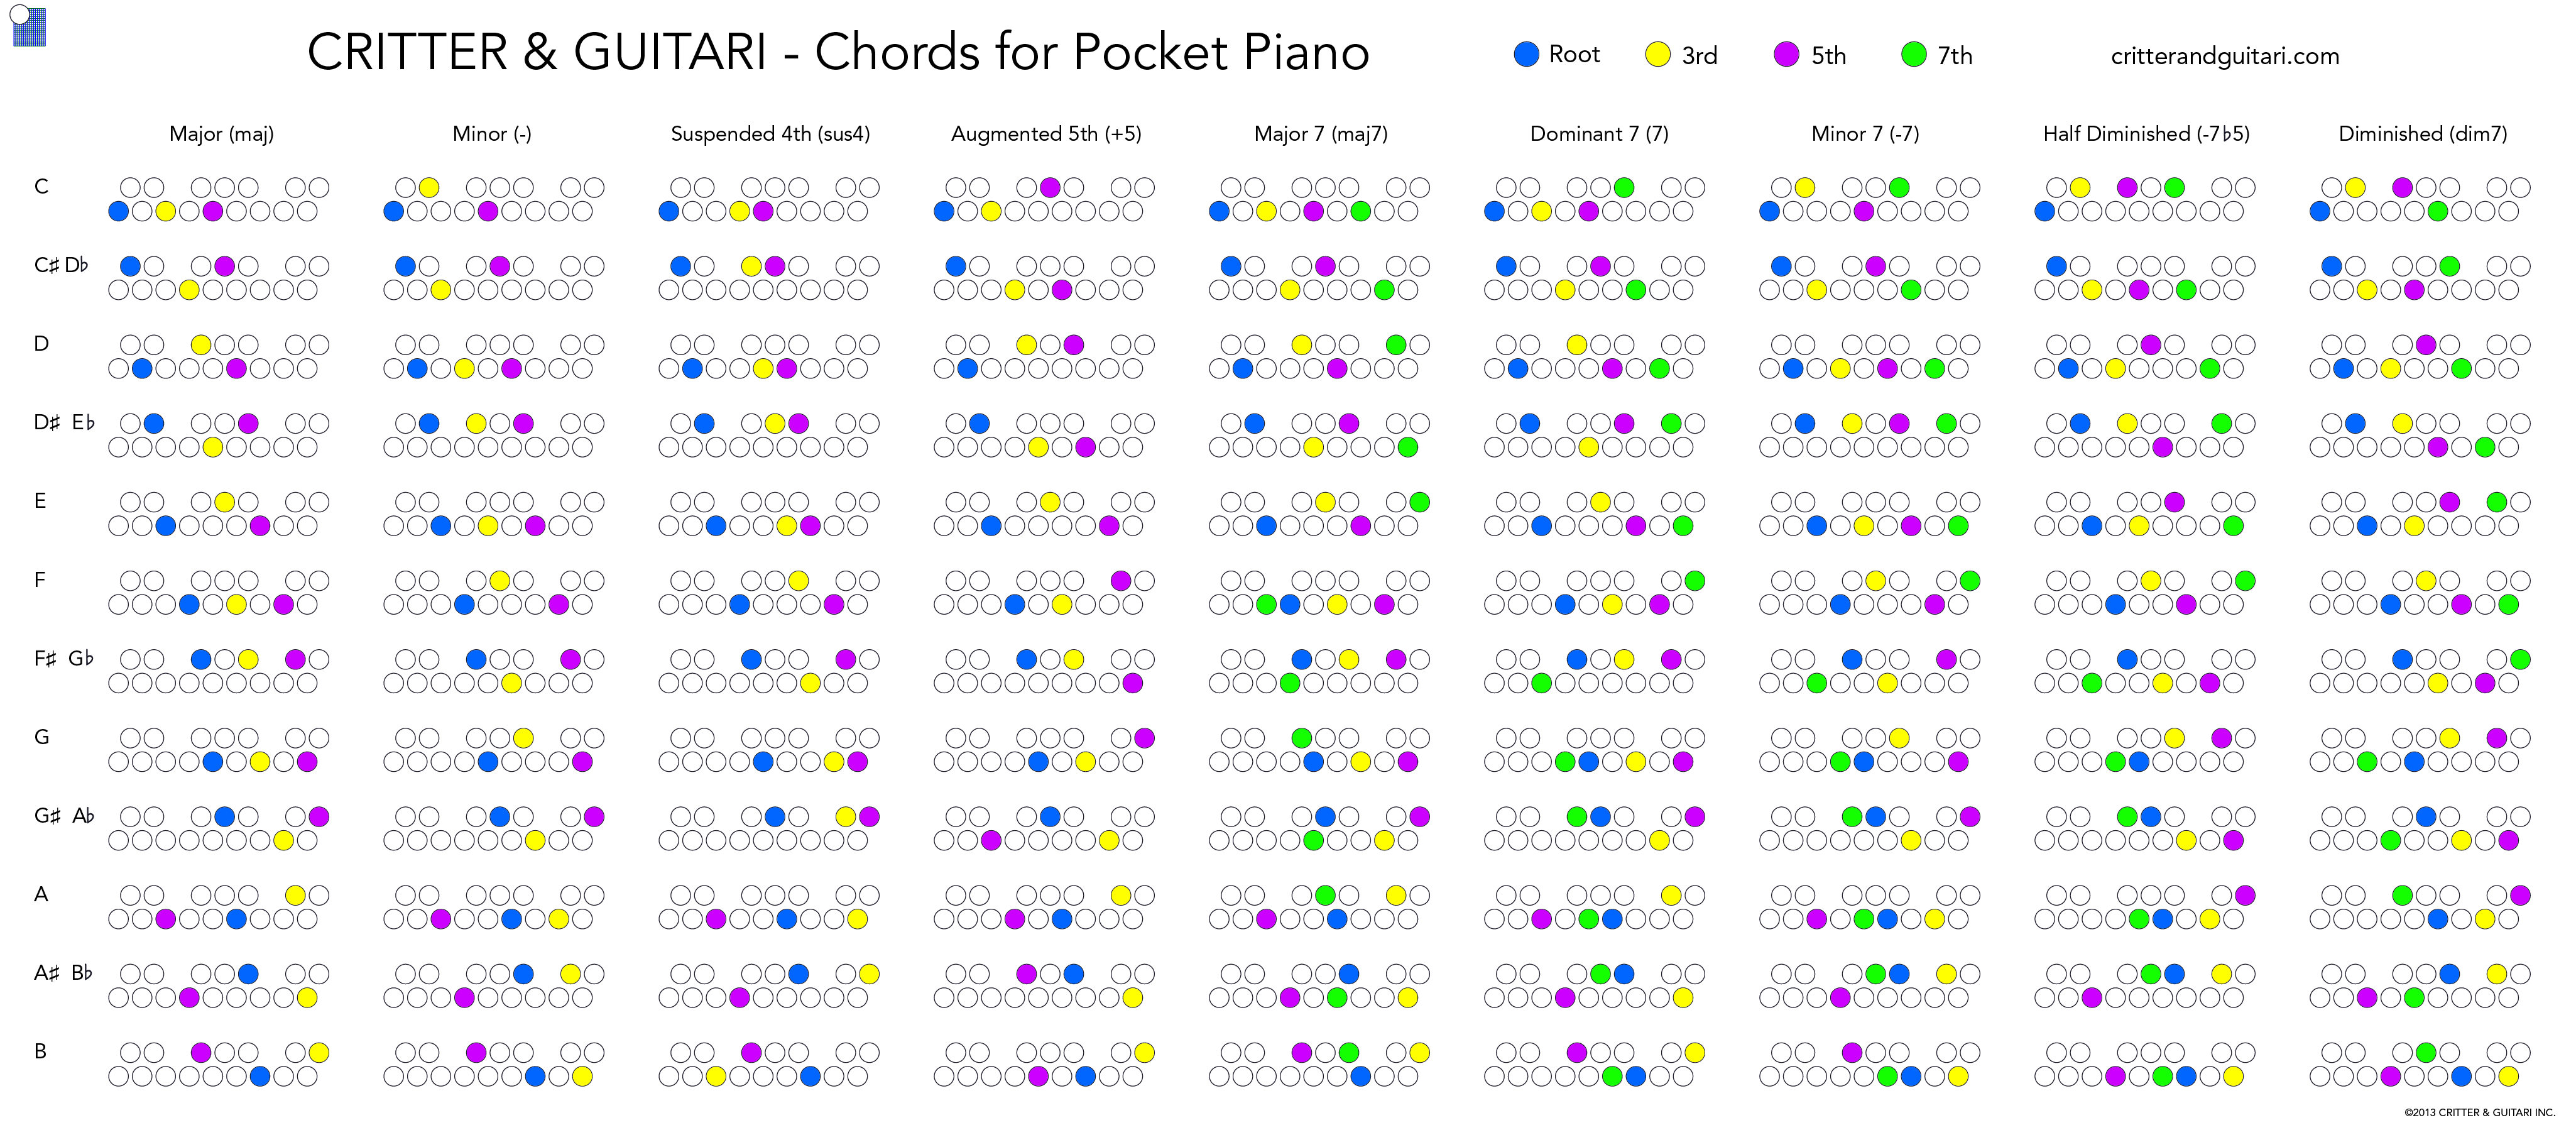 Critter guitari chords for pocket piano music pinterest critter guitari chords for pocket piano hexwebz Choice Image